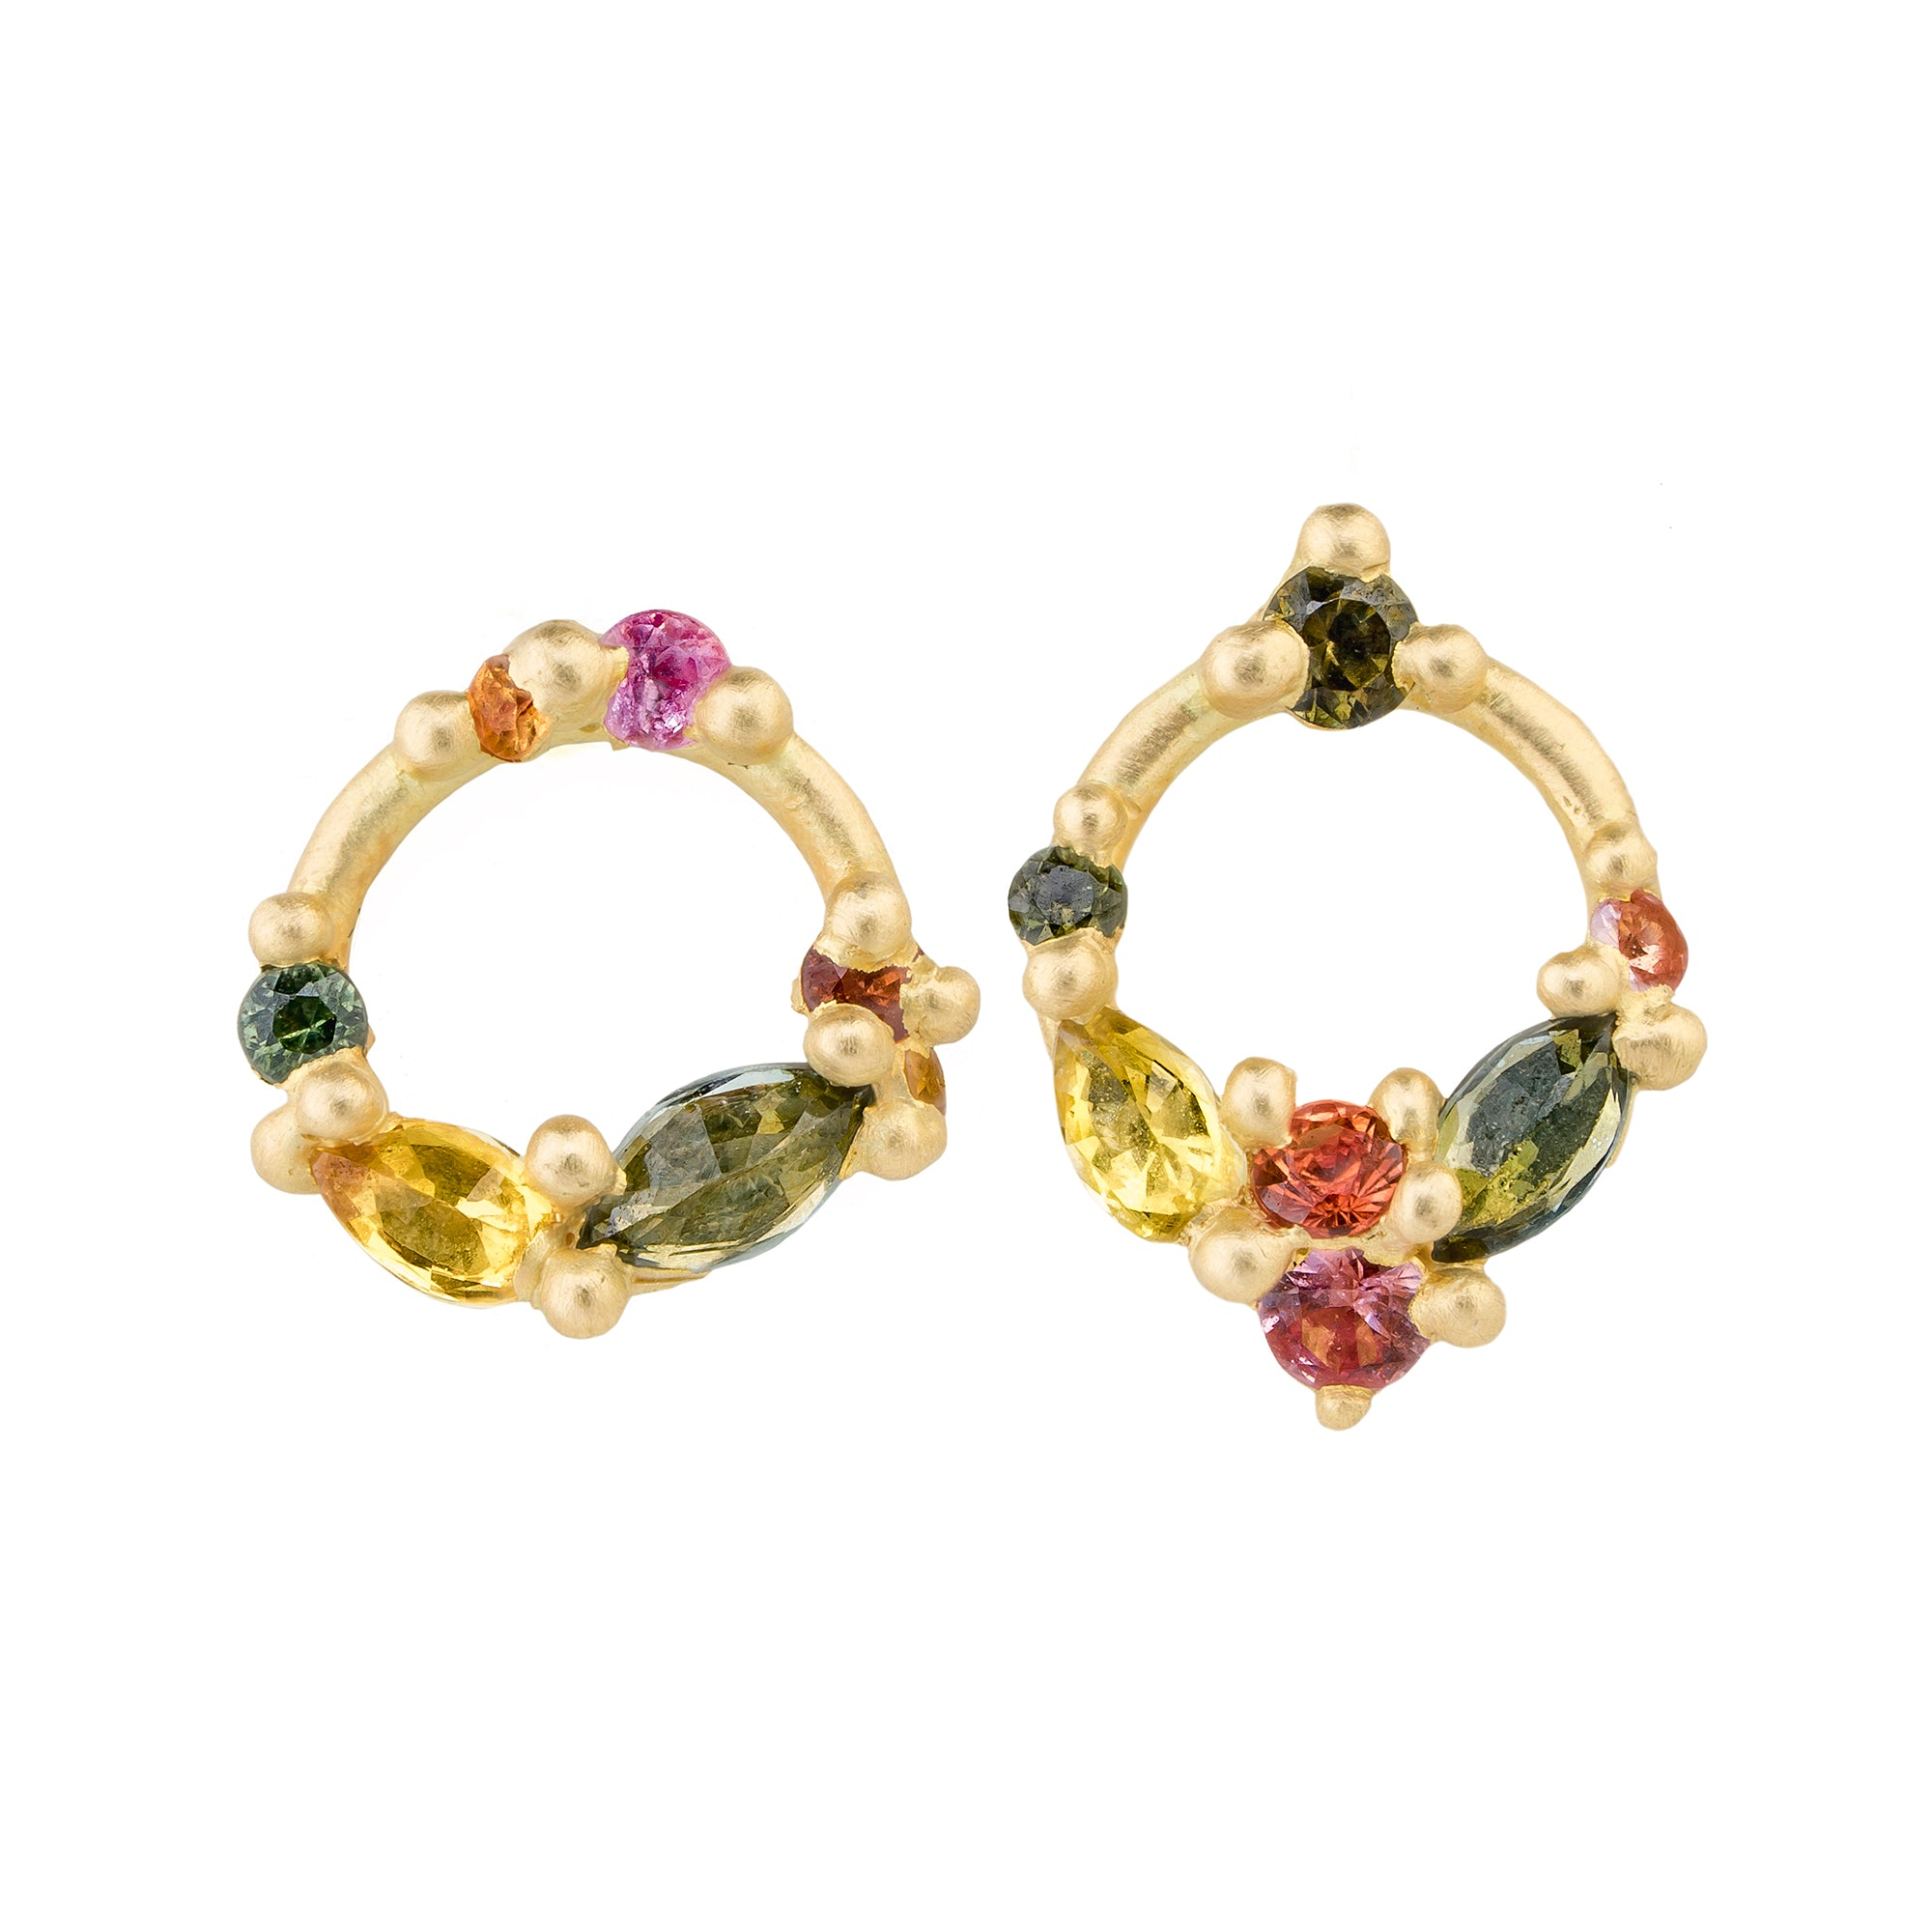 Des Gouttes de Rosee Studs by Polly Wales for Broken English Jewelry